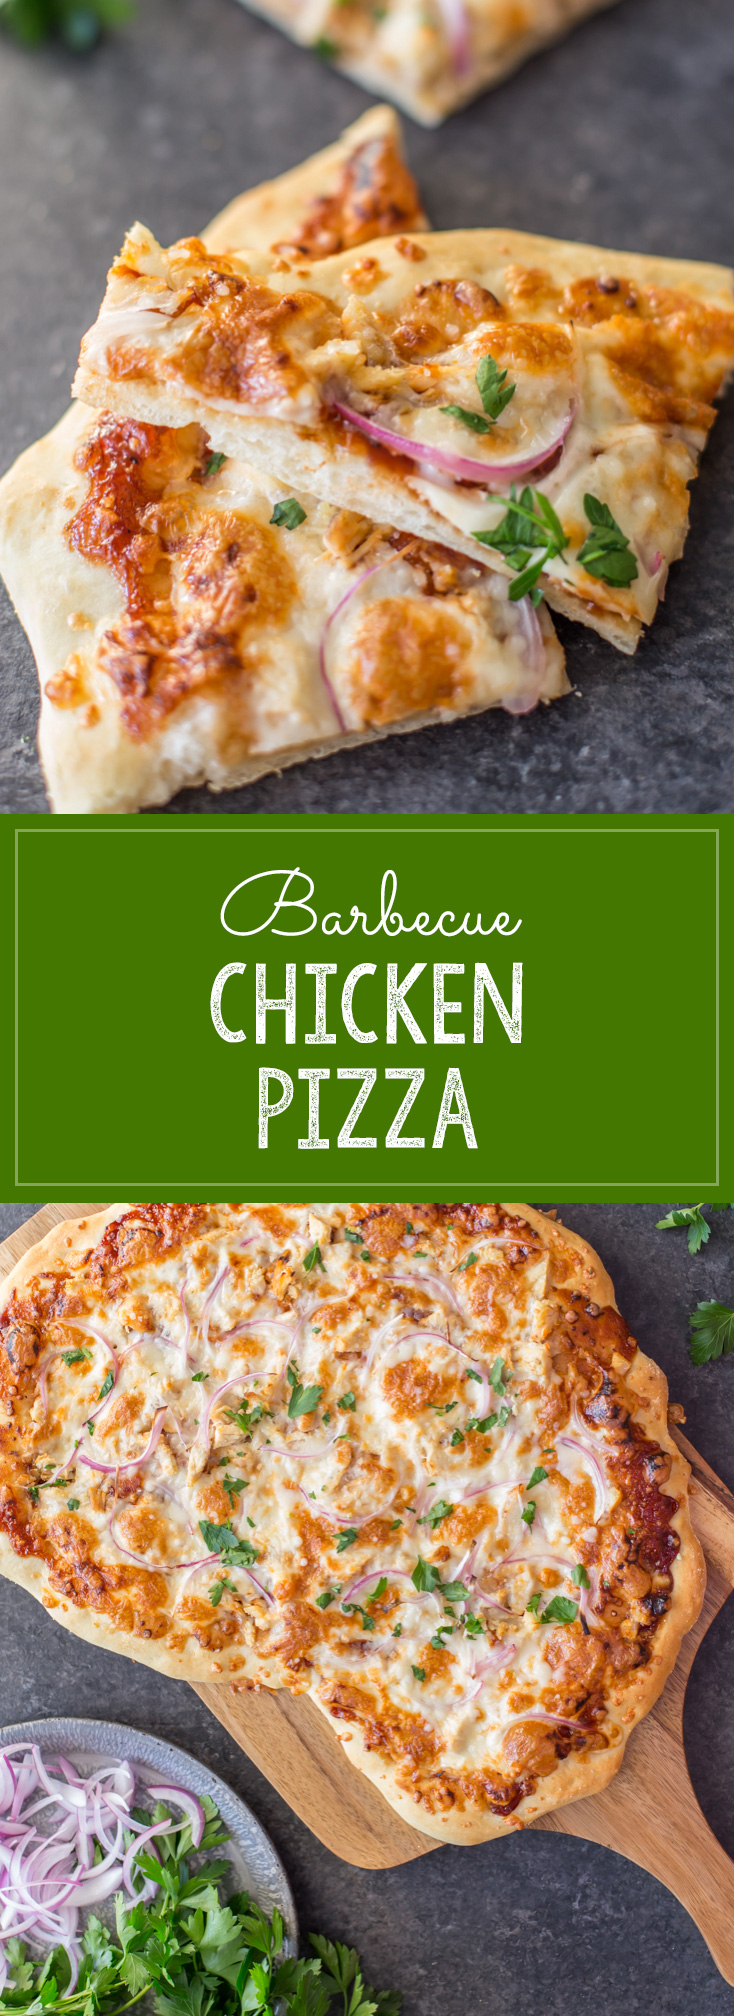 Barbecue Chicken Pizza - Lovely Little Kitchen